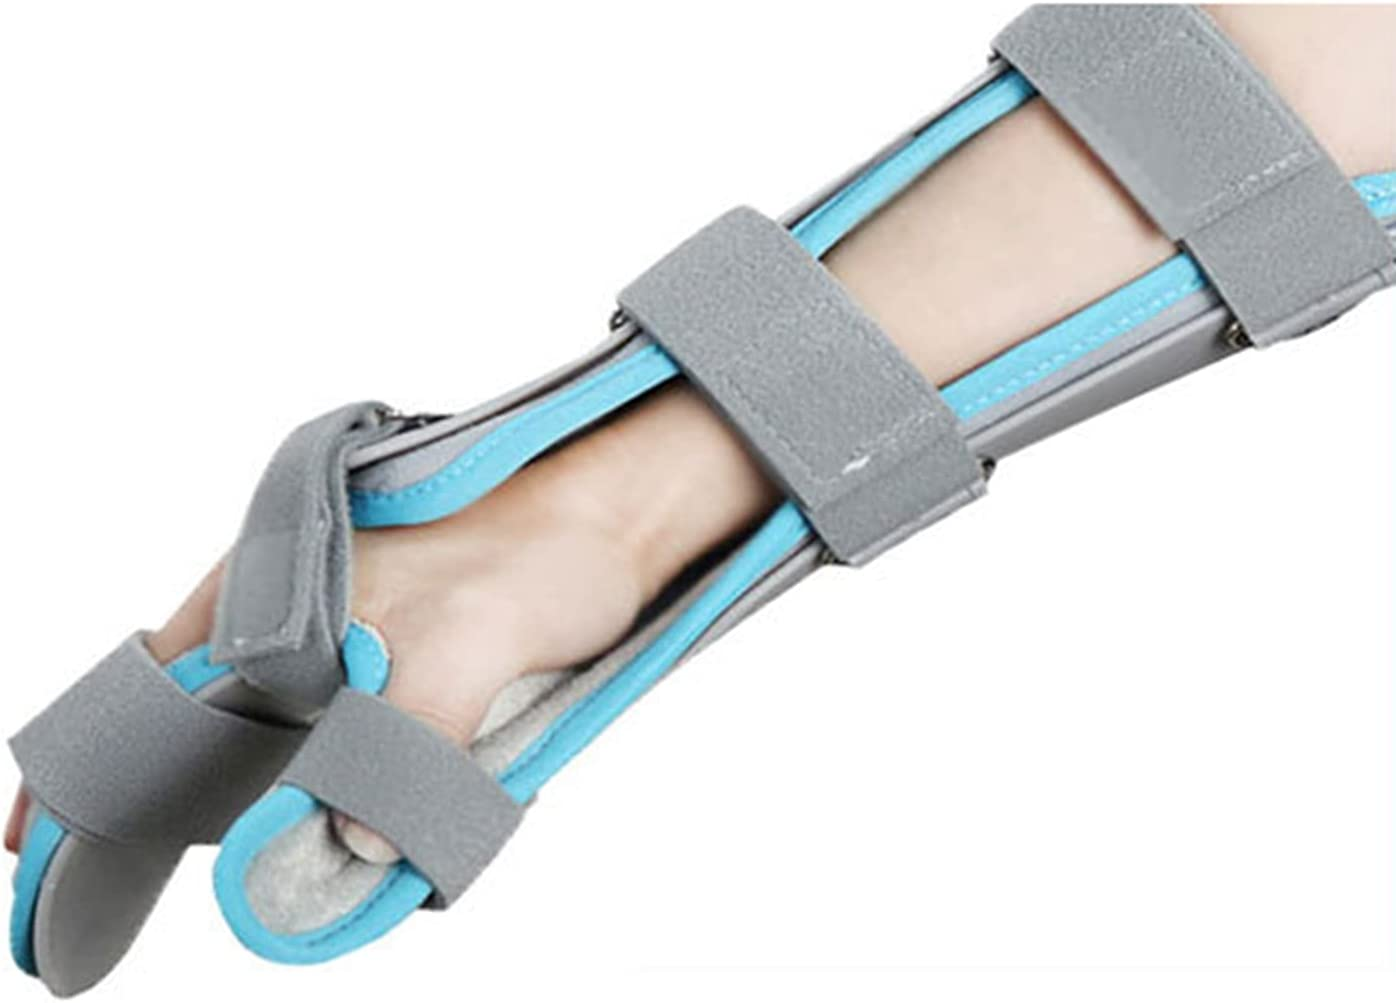 Max 40% OFF Spasm price N A Hand Splint Soft Immobilizer Stroke He Brace Support